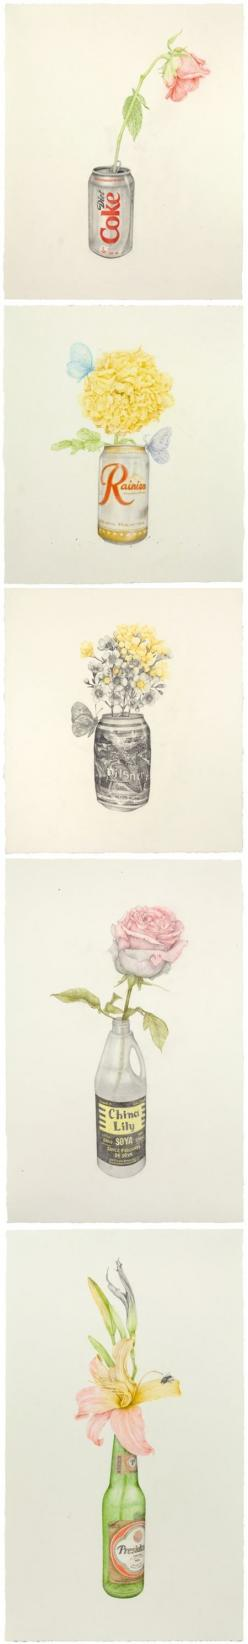 These amazing drawings are the work of New York based artist Aurel Schmidt. They are part of  a series titled, Reveries Of A Lost Life Mask in which she pairs images with the poetry of American poet Franz Wright. I love their simplicity… so beautiful, yet